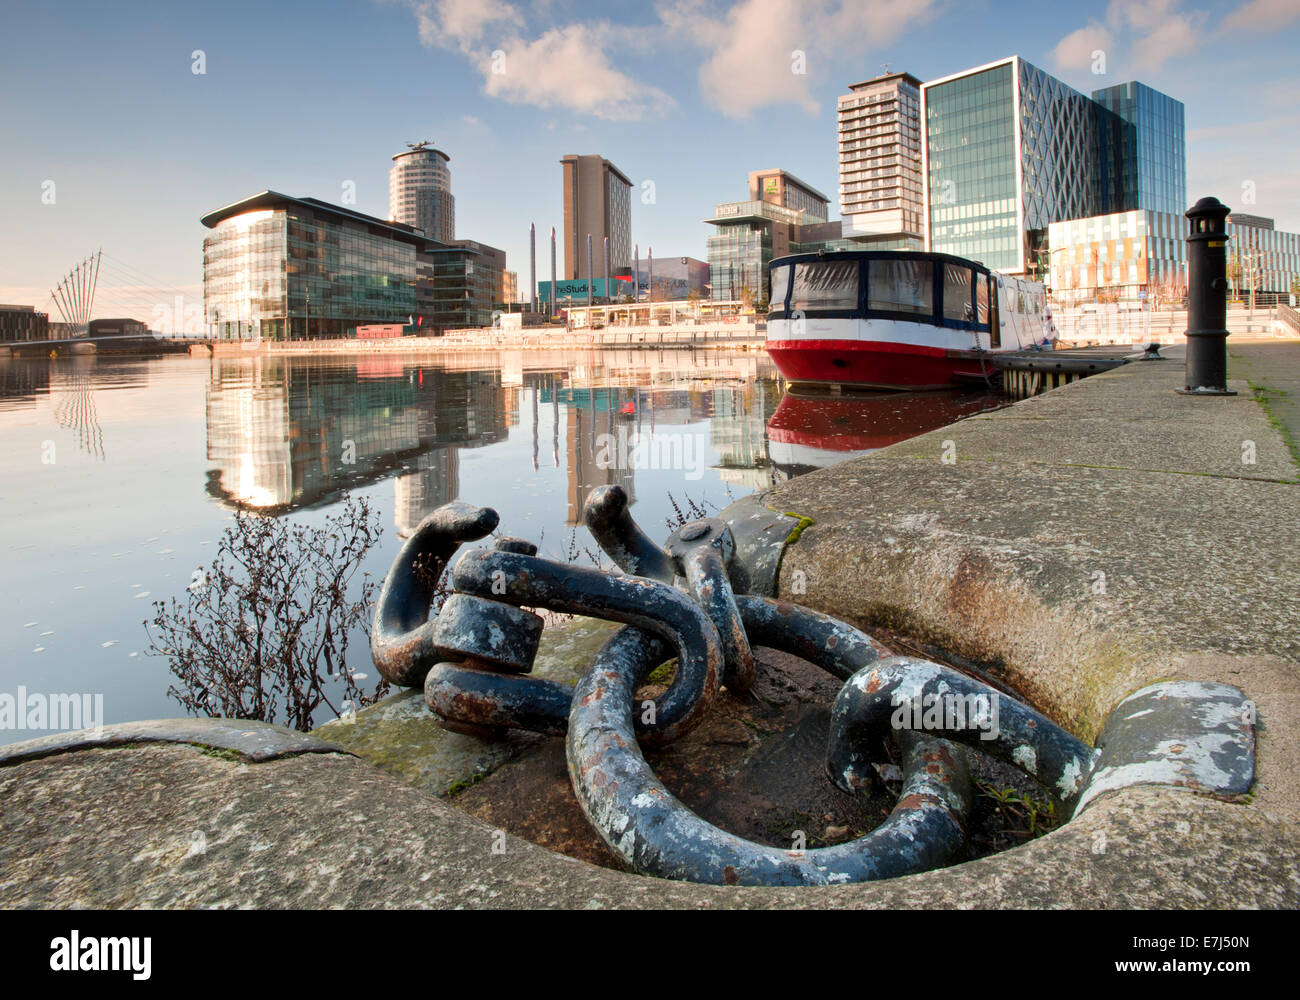 MediaCityUK and the BBC Studios, Salford Quays, Greater Manchester, England, UK - Stock Image